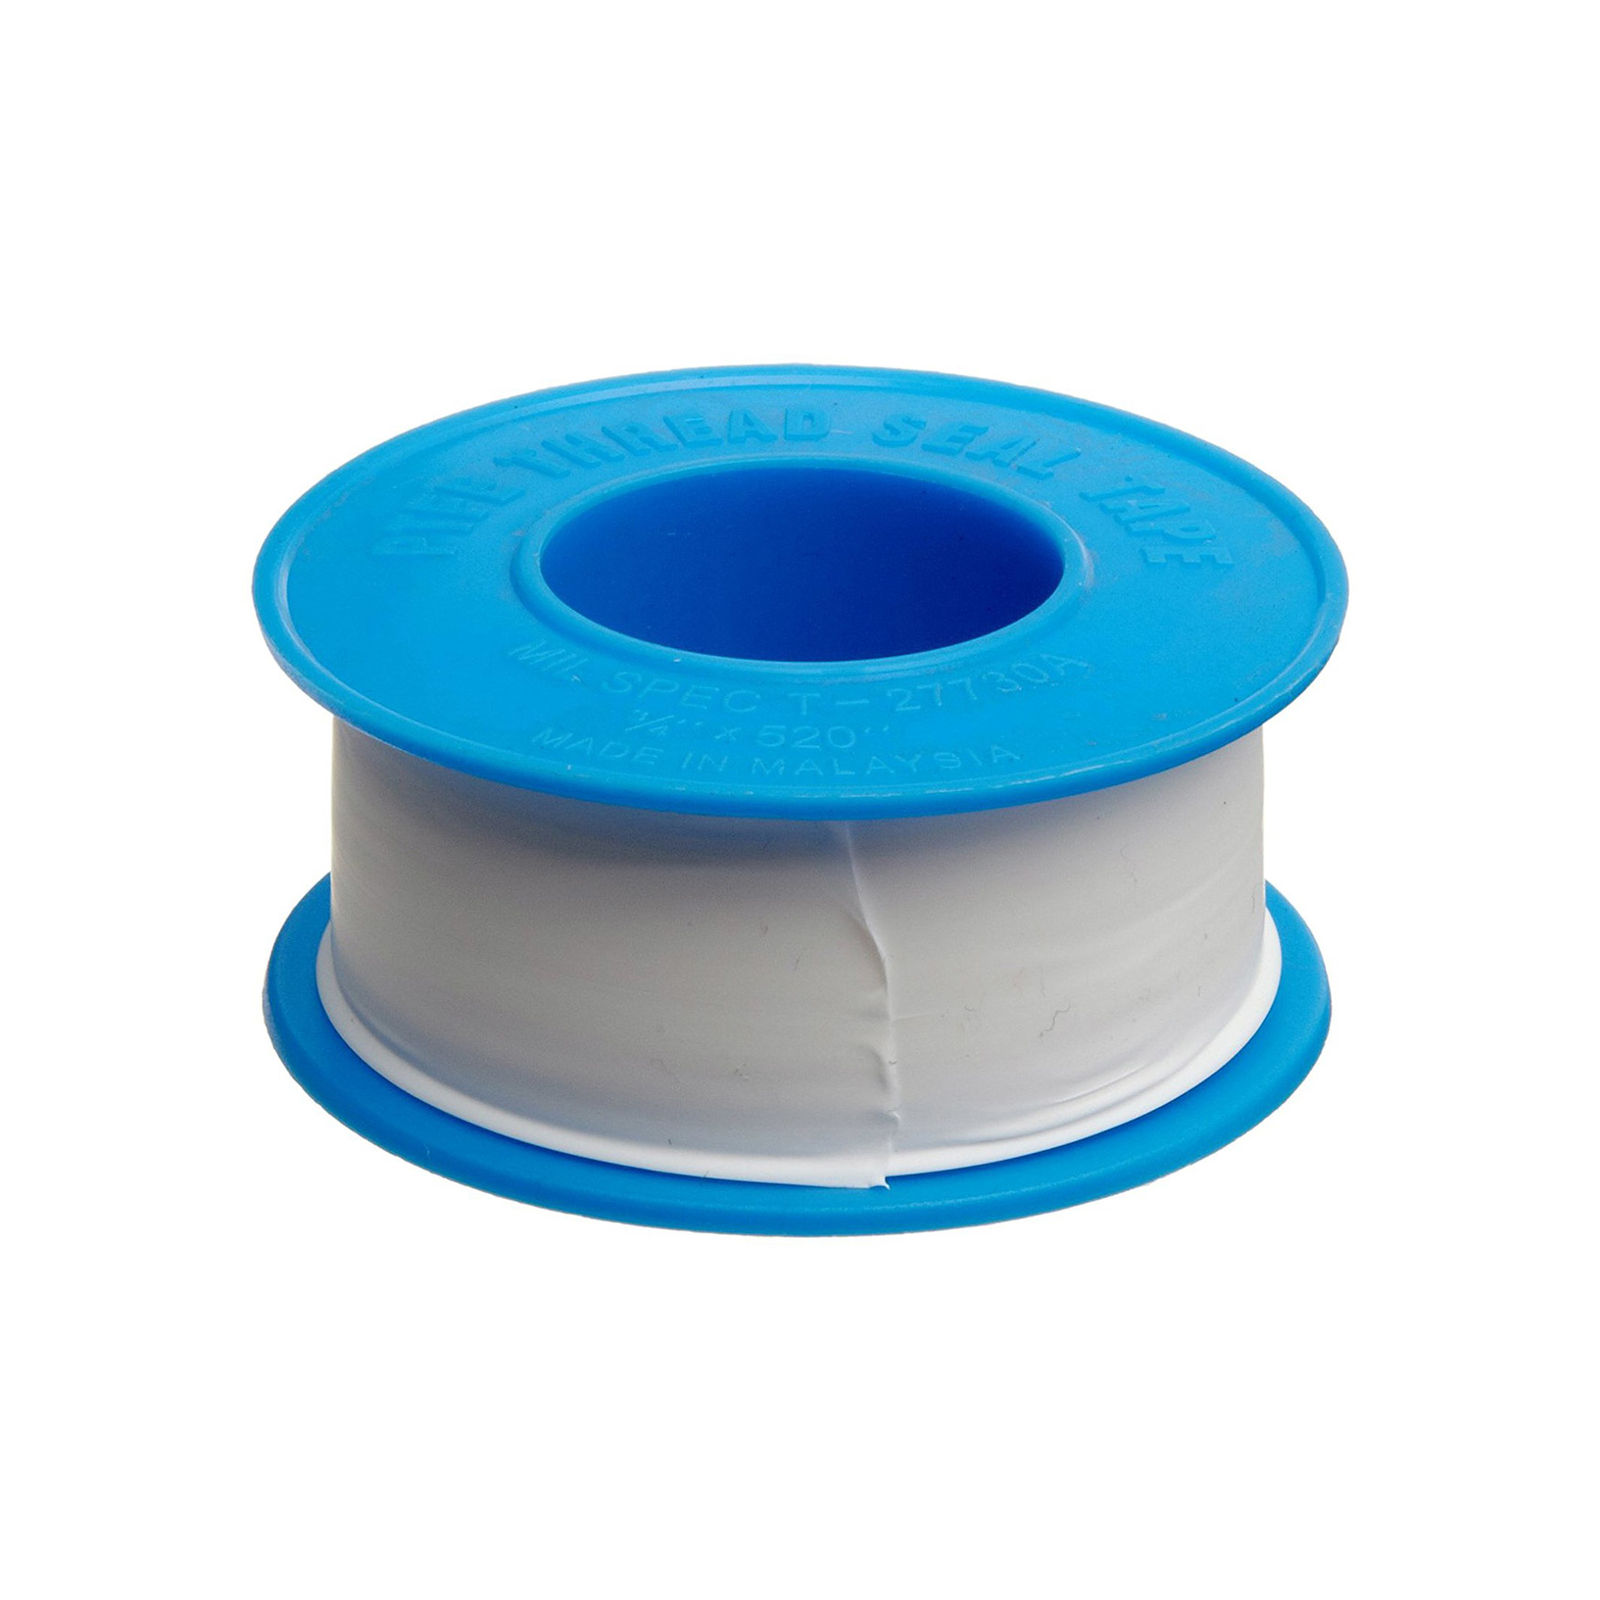 "Dixon Valve TTB75 PTFE Industrial Sealant Tape 520"" Length by 3/4"" Width"